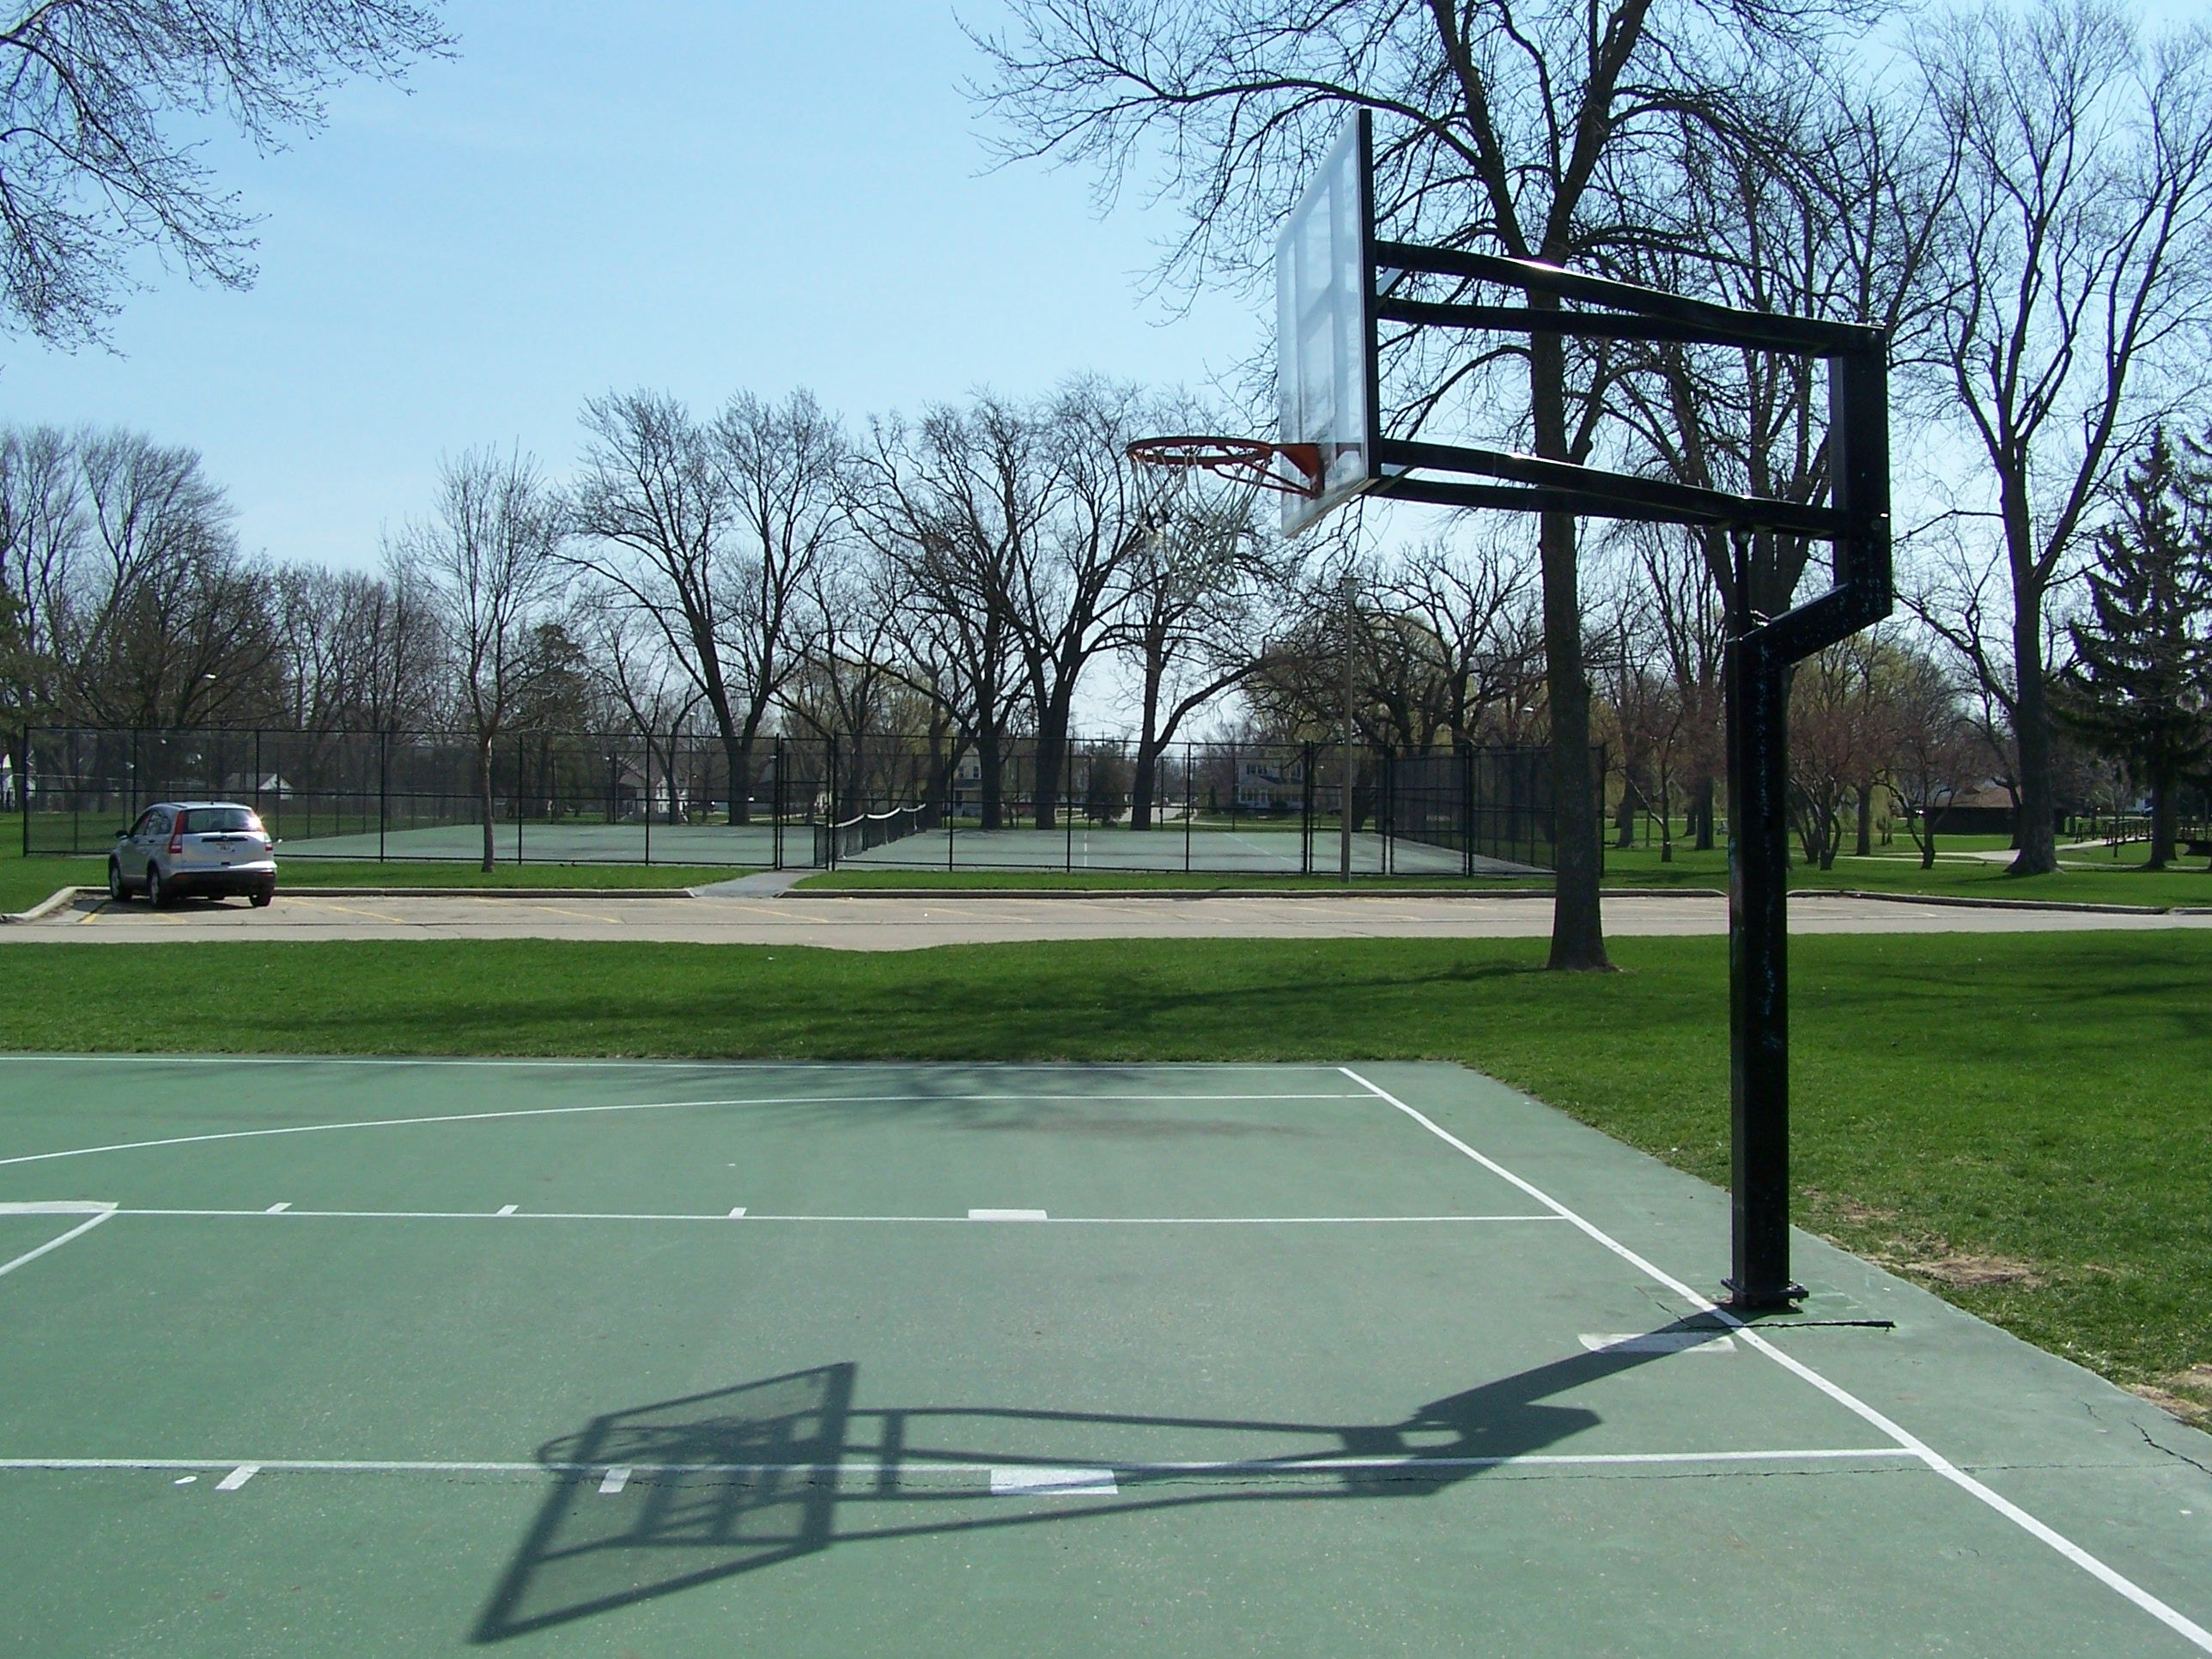 South Park Features A Basketball Court And Tennis Courts Park Parks Department Tennis Court